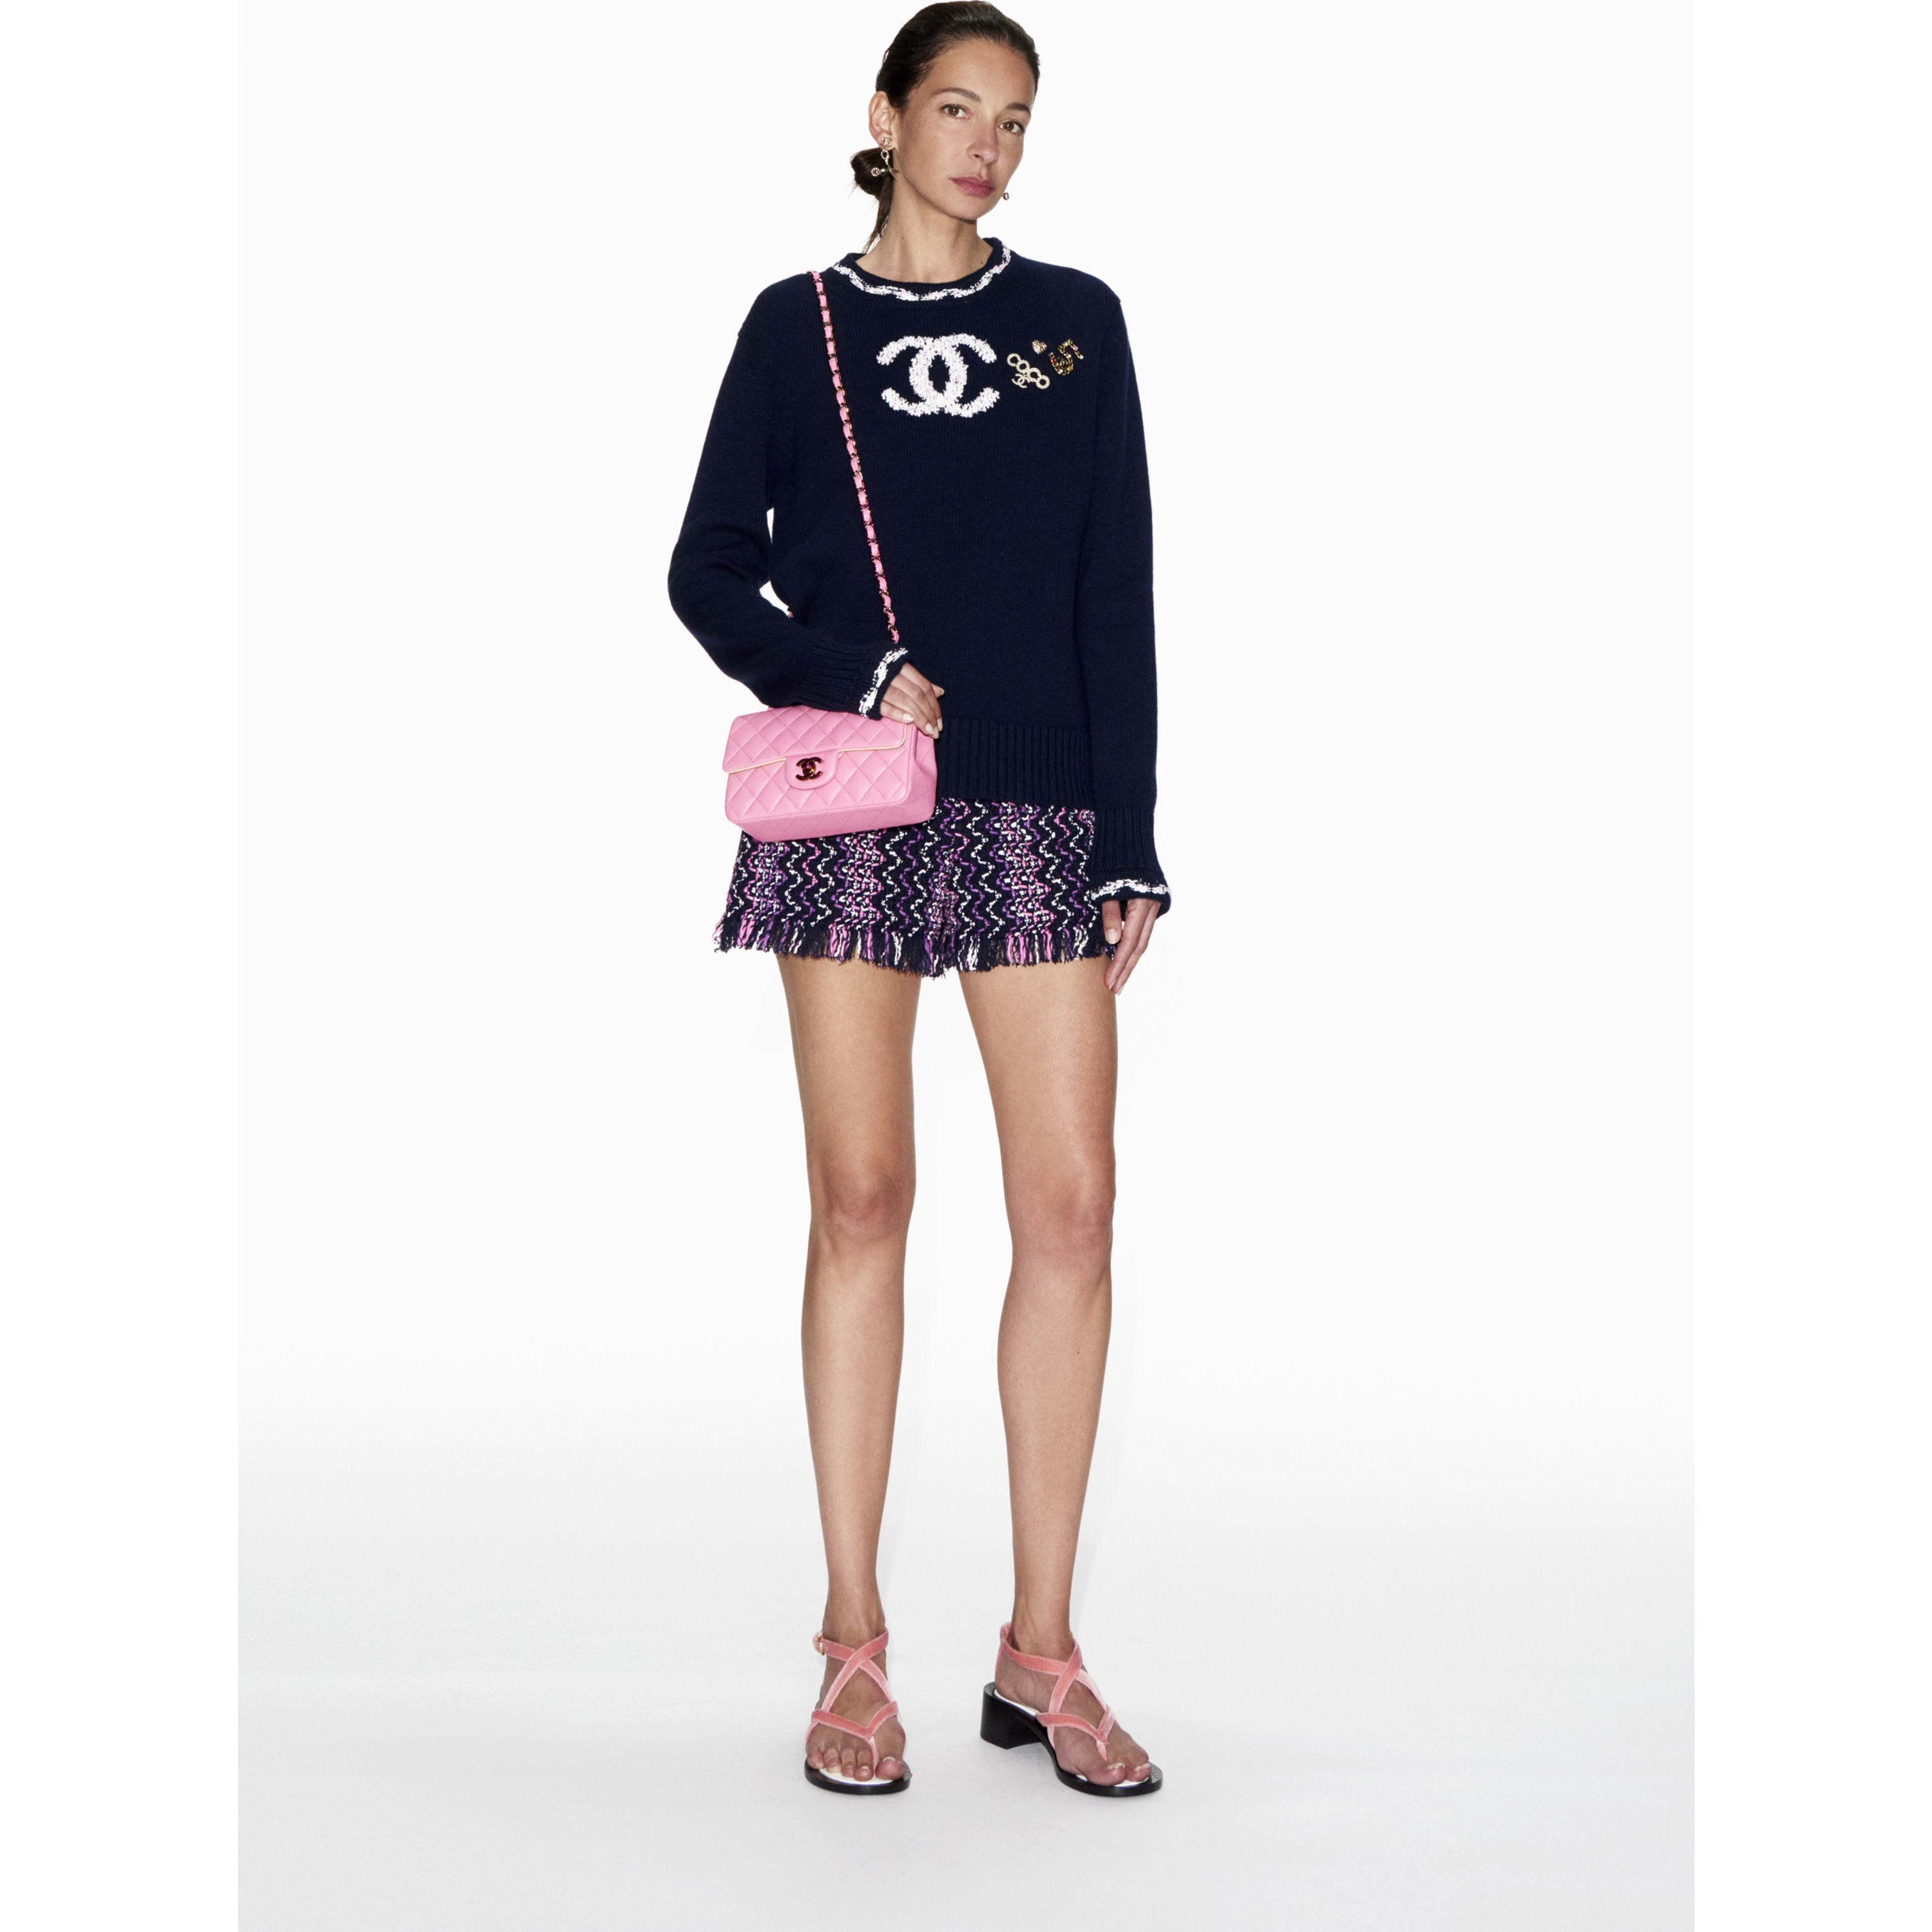 Shorts - Navy Blue, Purple & Pink - Cotton & Mixed Fibres - CHANEL - Default view - see standard sized version